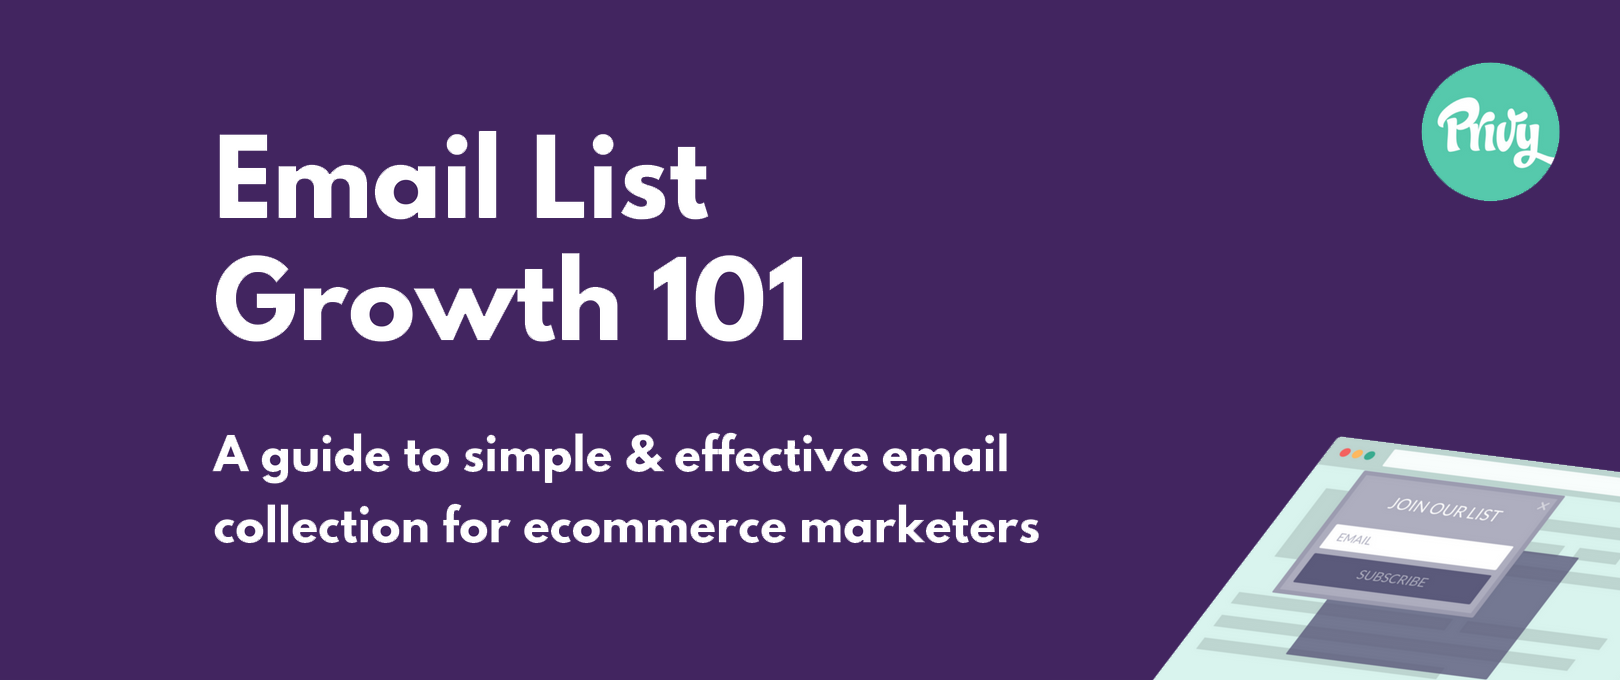 Email+List+Growth-2